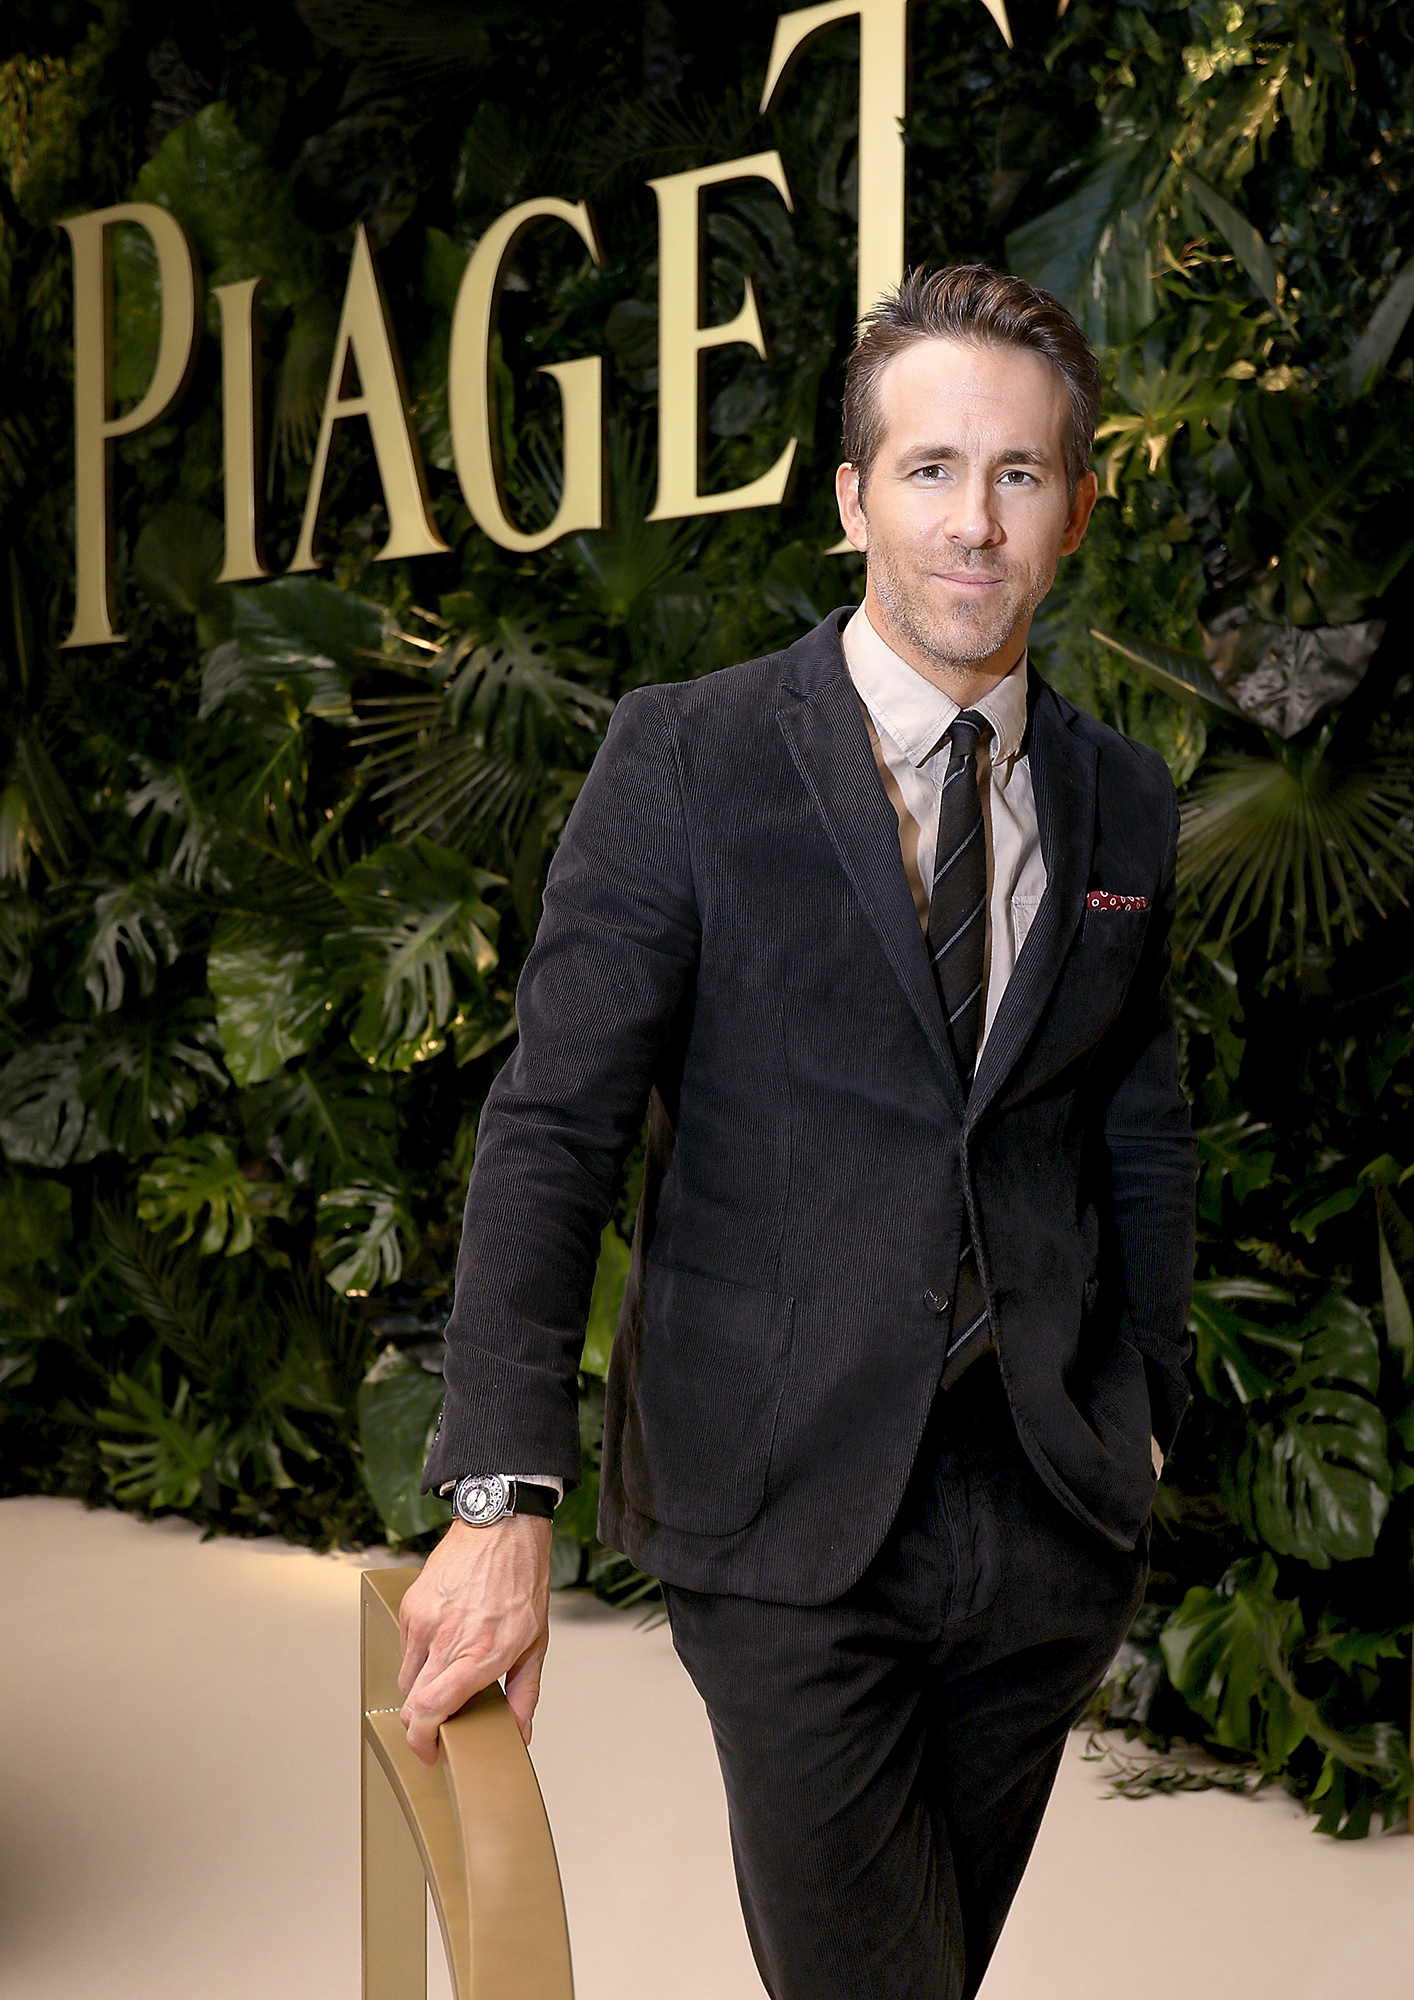 Piaget At SIHH 2018 - Booth